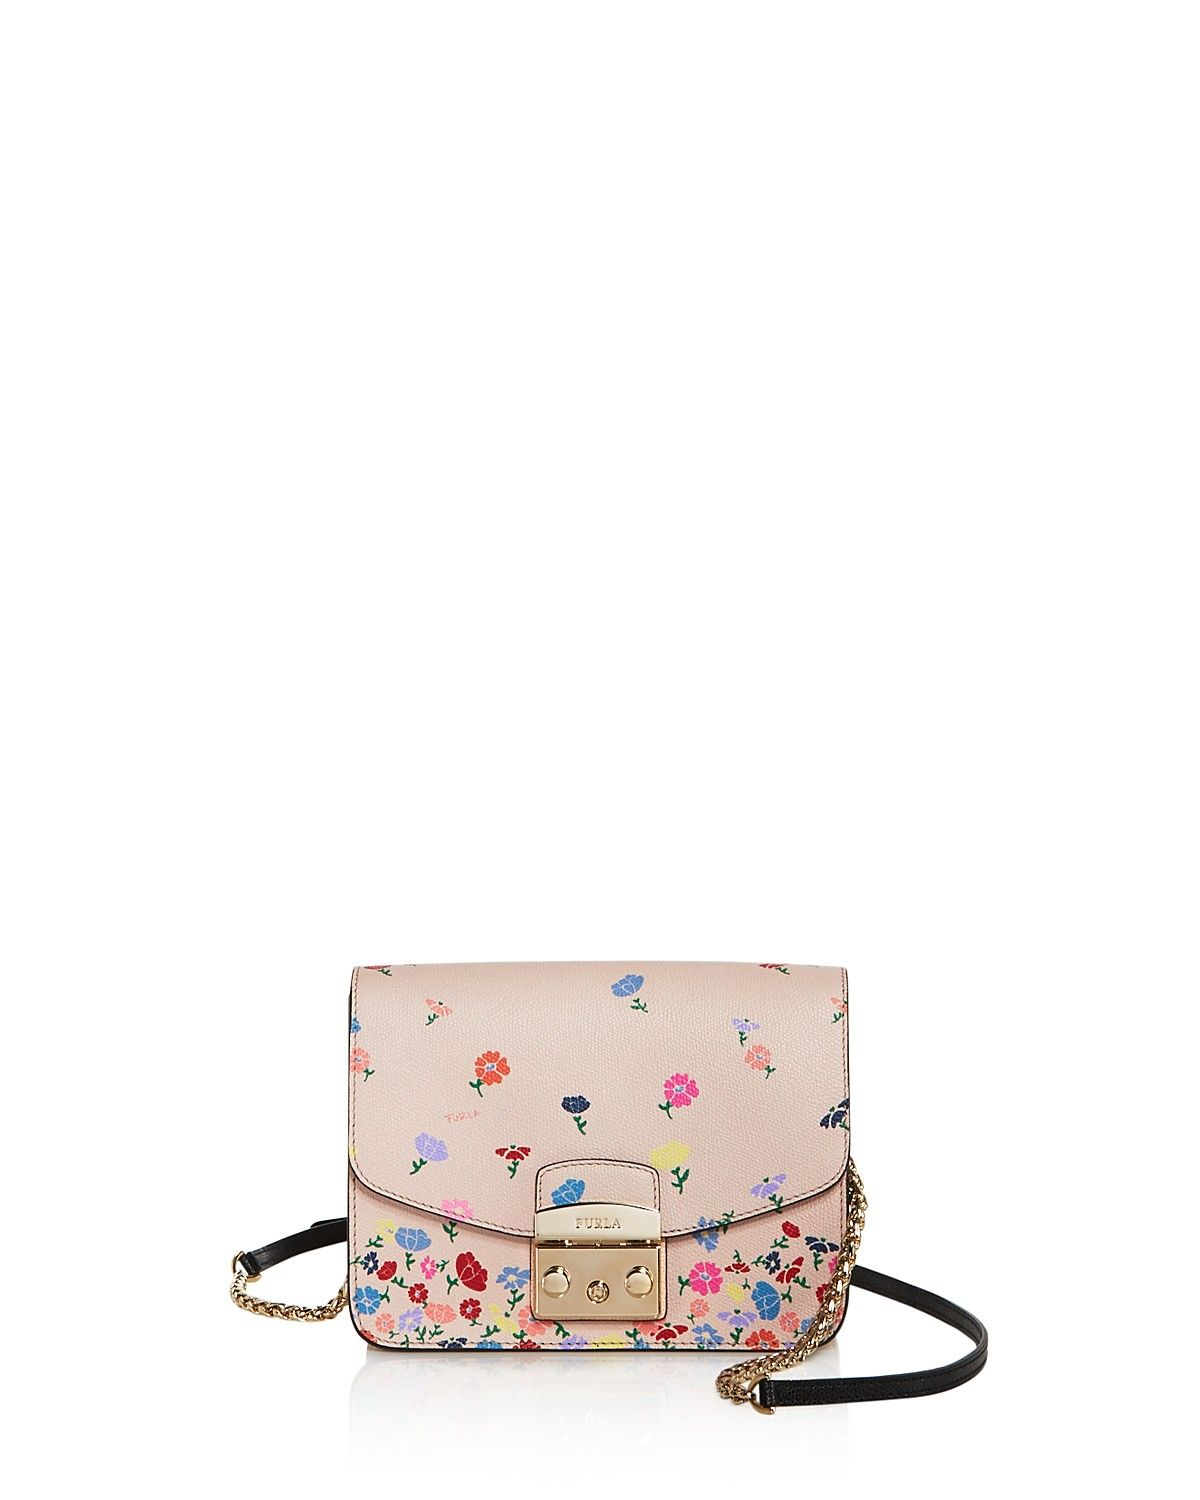 0867cbdfb93 Furla Floral Metropolis Exclusively at Bloomingdales   Purse ...